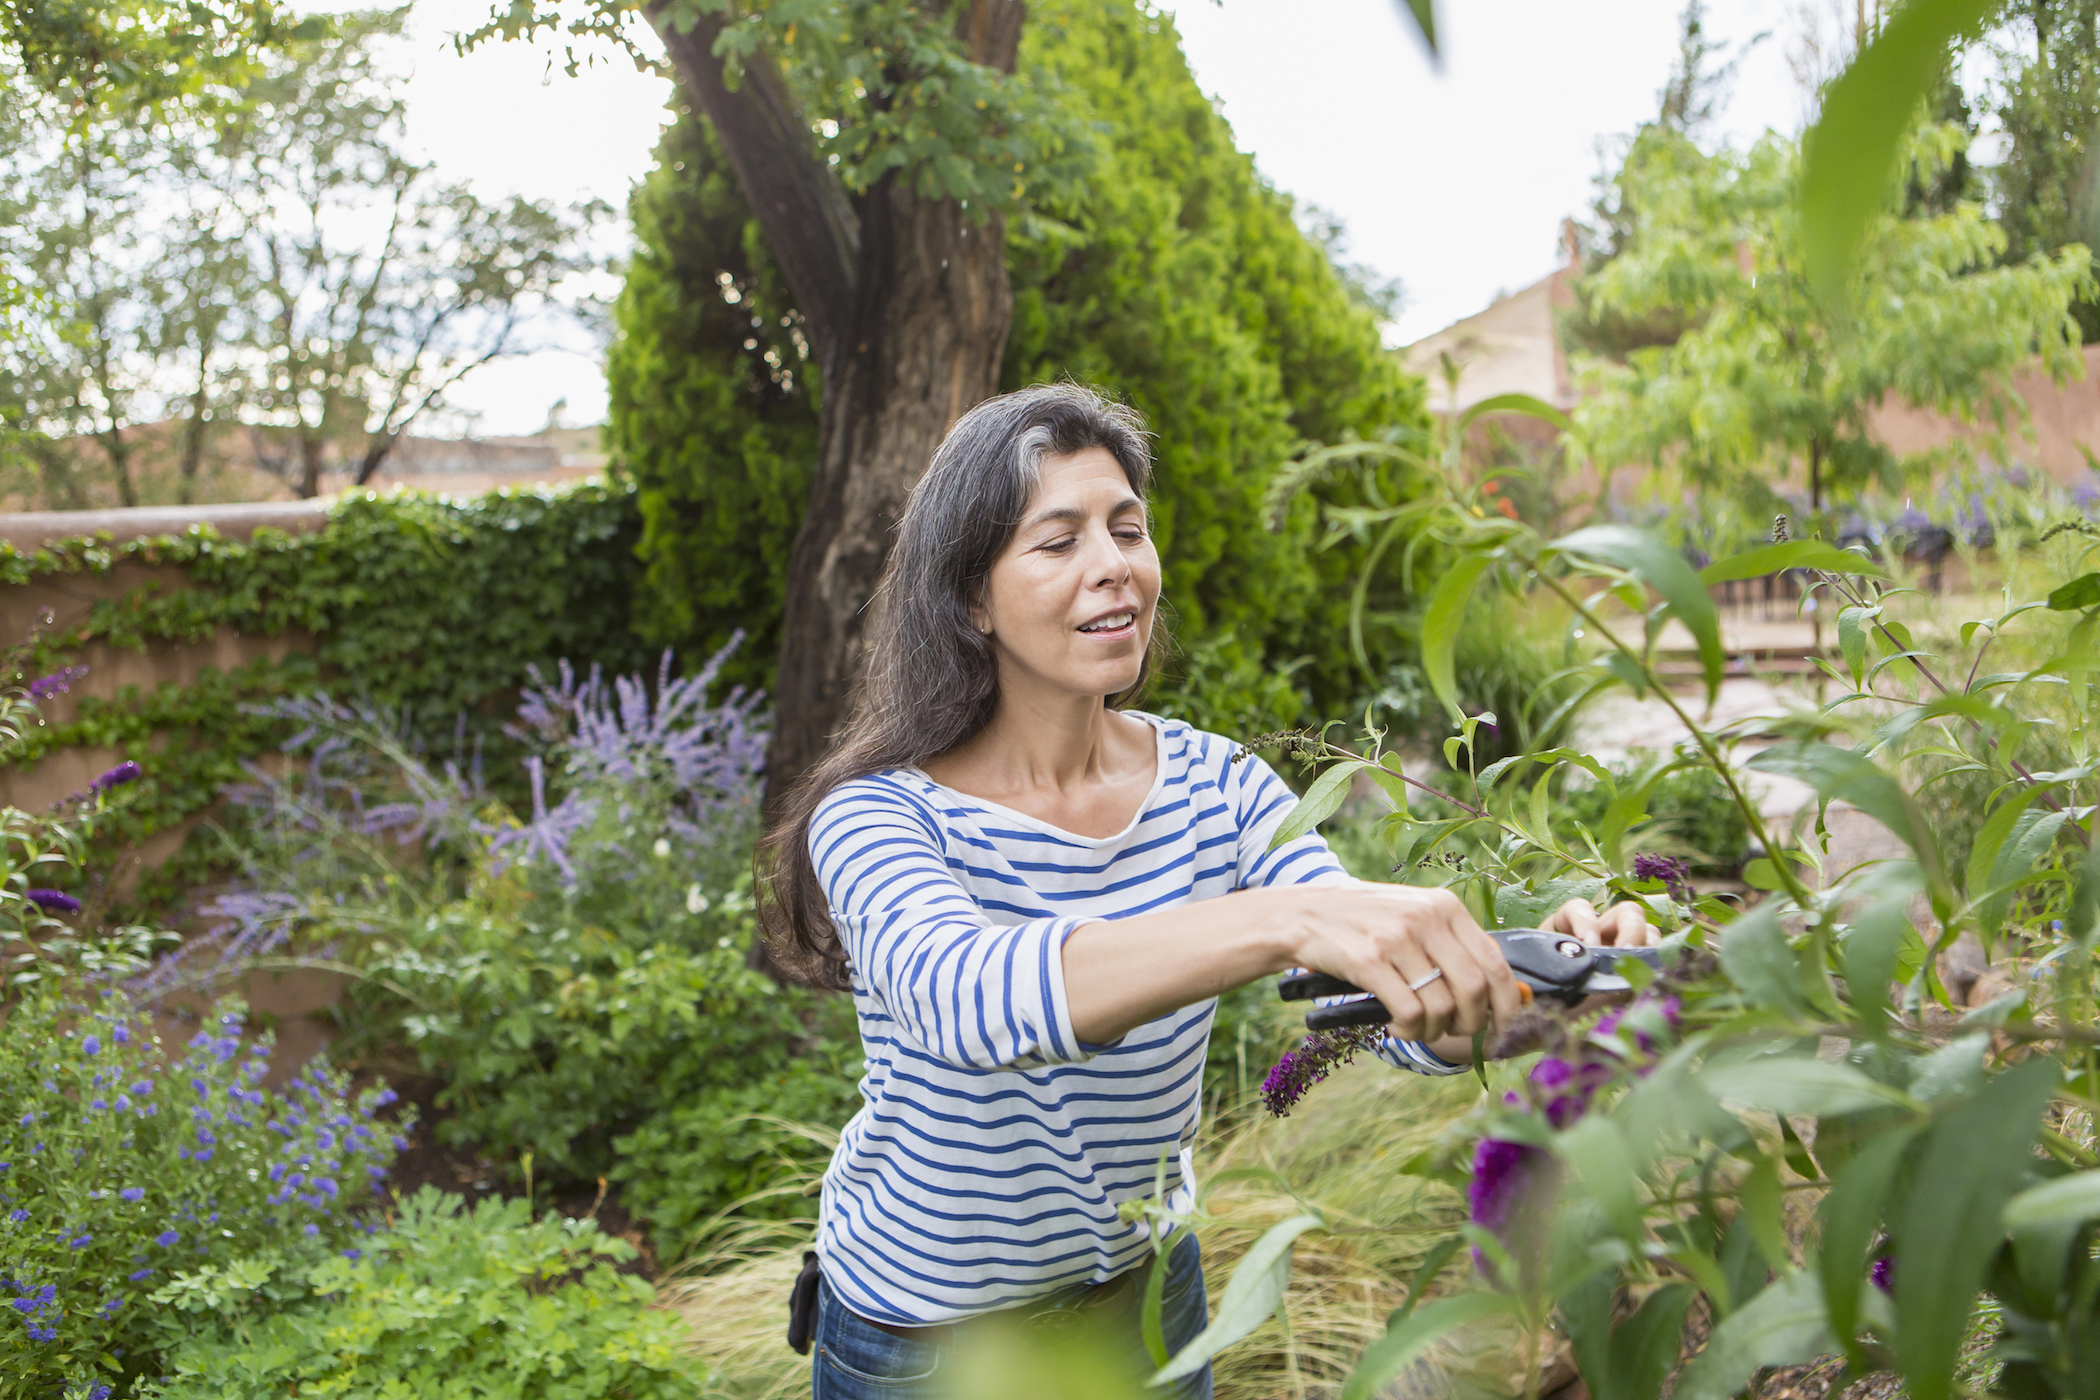 A woman prunes plants in her garden.